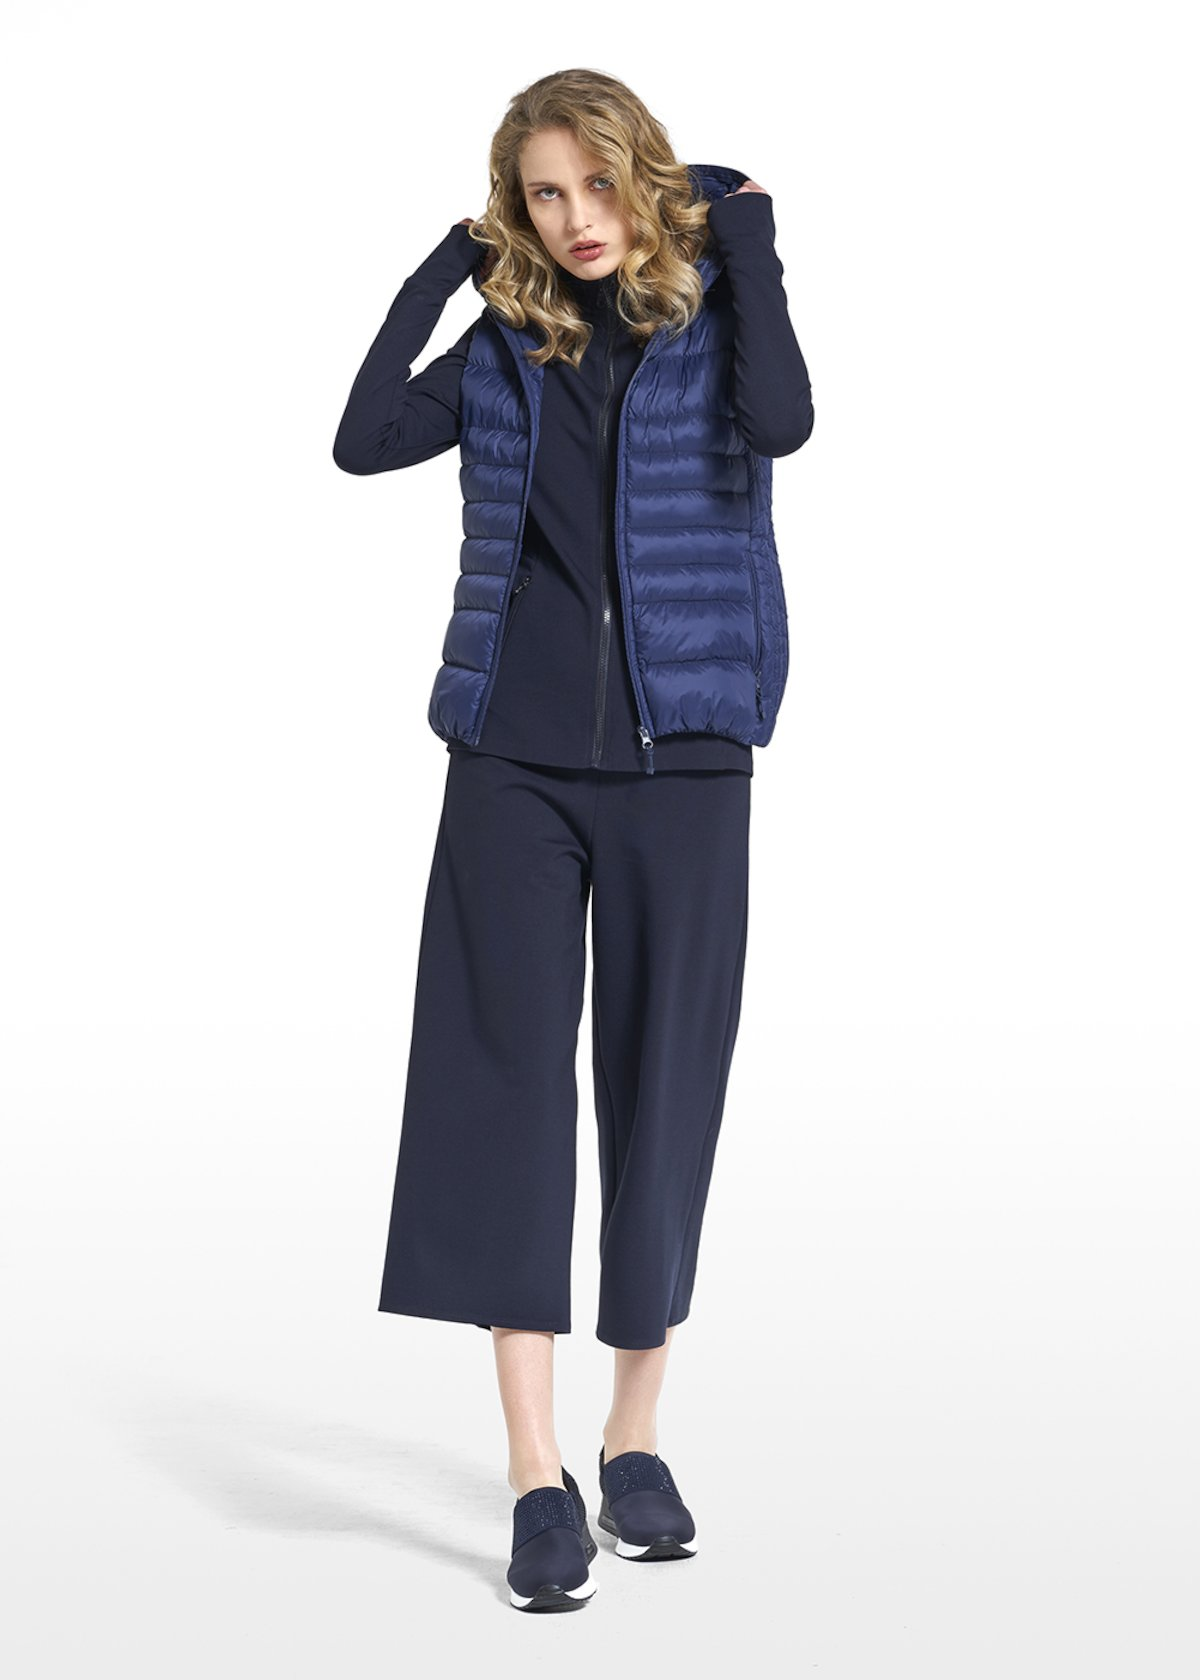 Down jacket in nylon Pegghy sleeveless and with hood - Medium Blue - Woman - Category image